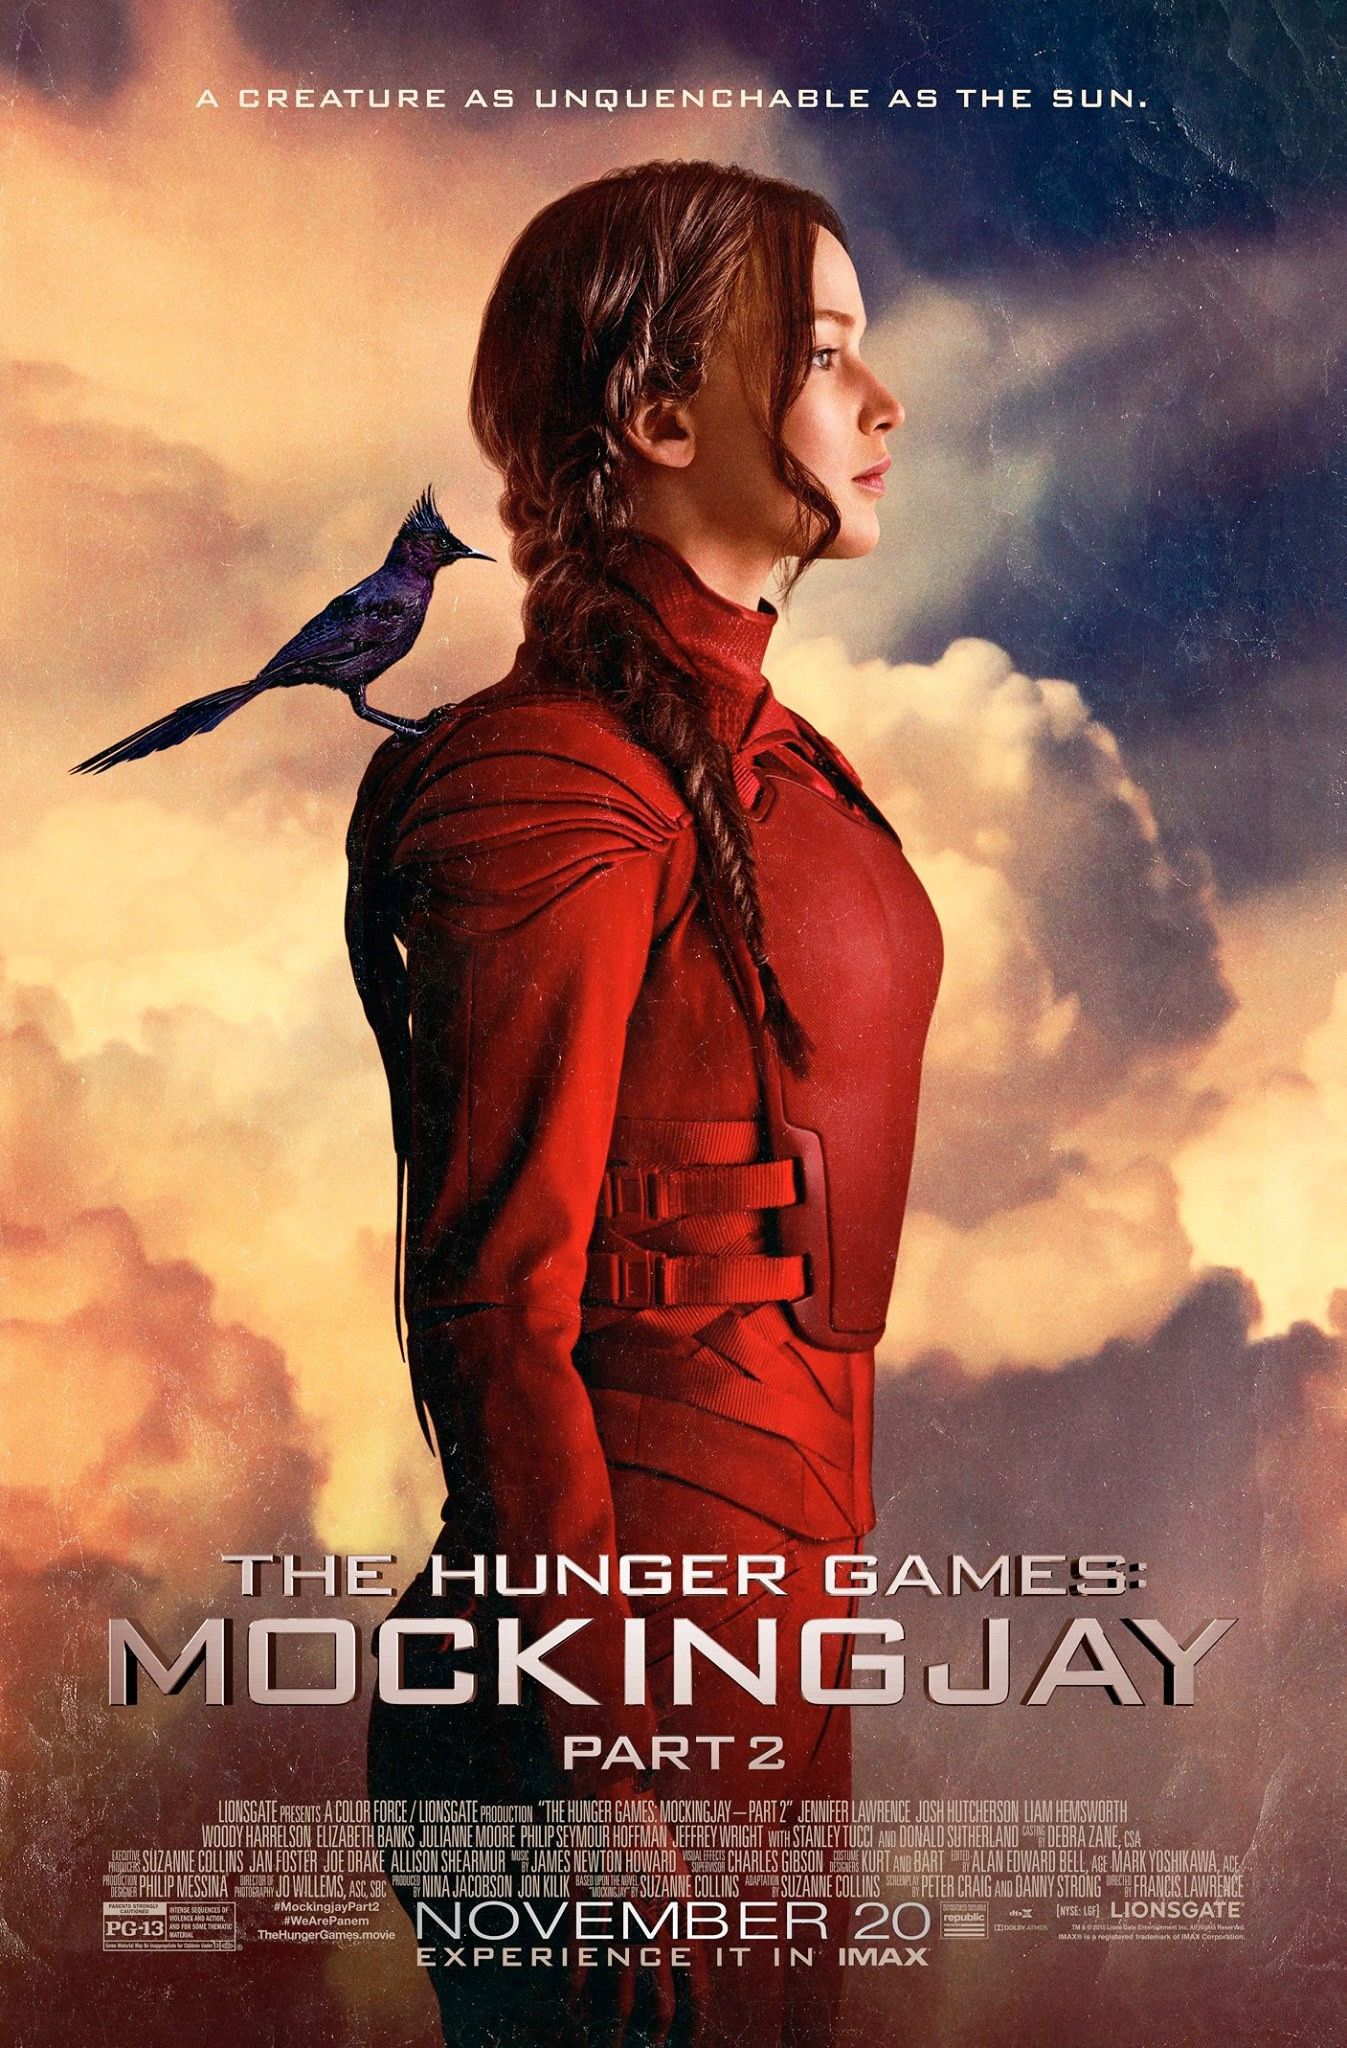 The Hunger Games Mockingjay Part 2 Movies Juegos Del Hambre